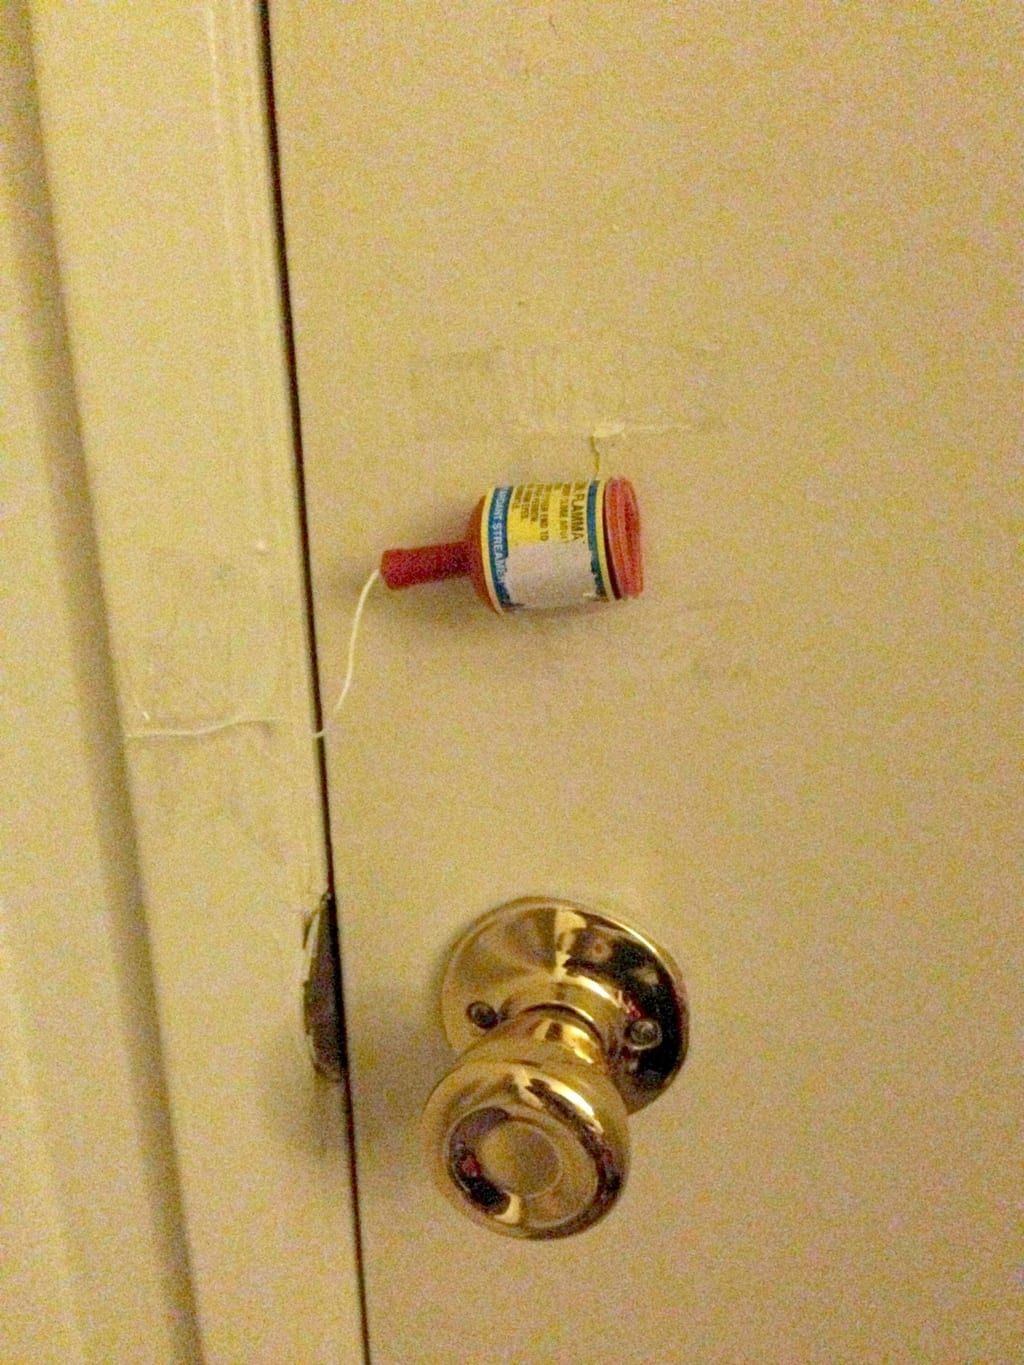 The Best Part Of This Prank It Will Wake Your Sleepy Kid Up And Fast Funny April Fools Pranks April Fools Pranks Pranks